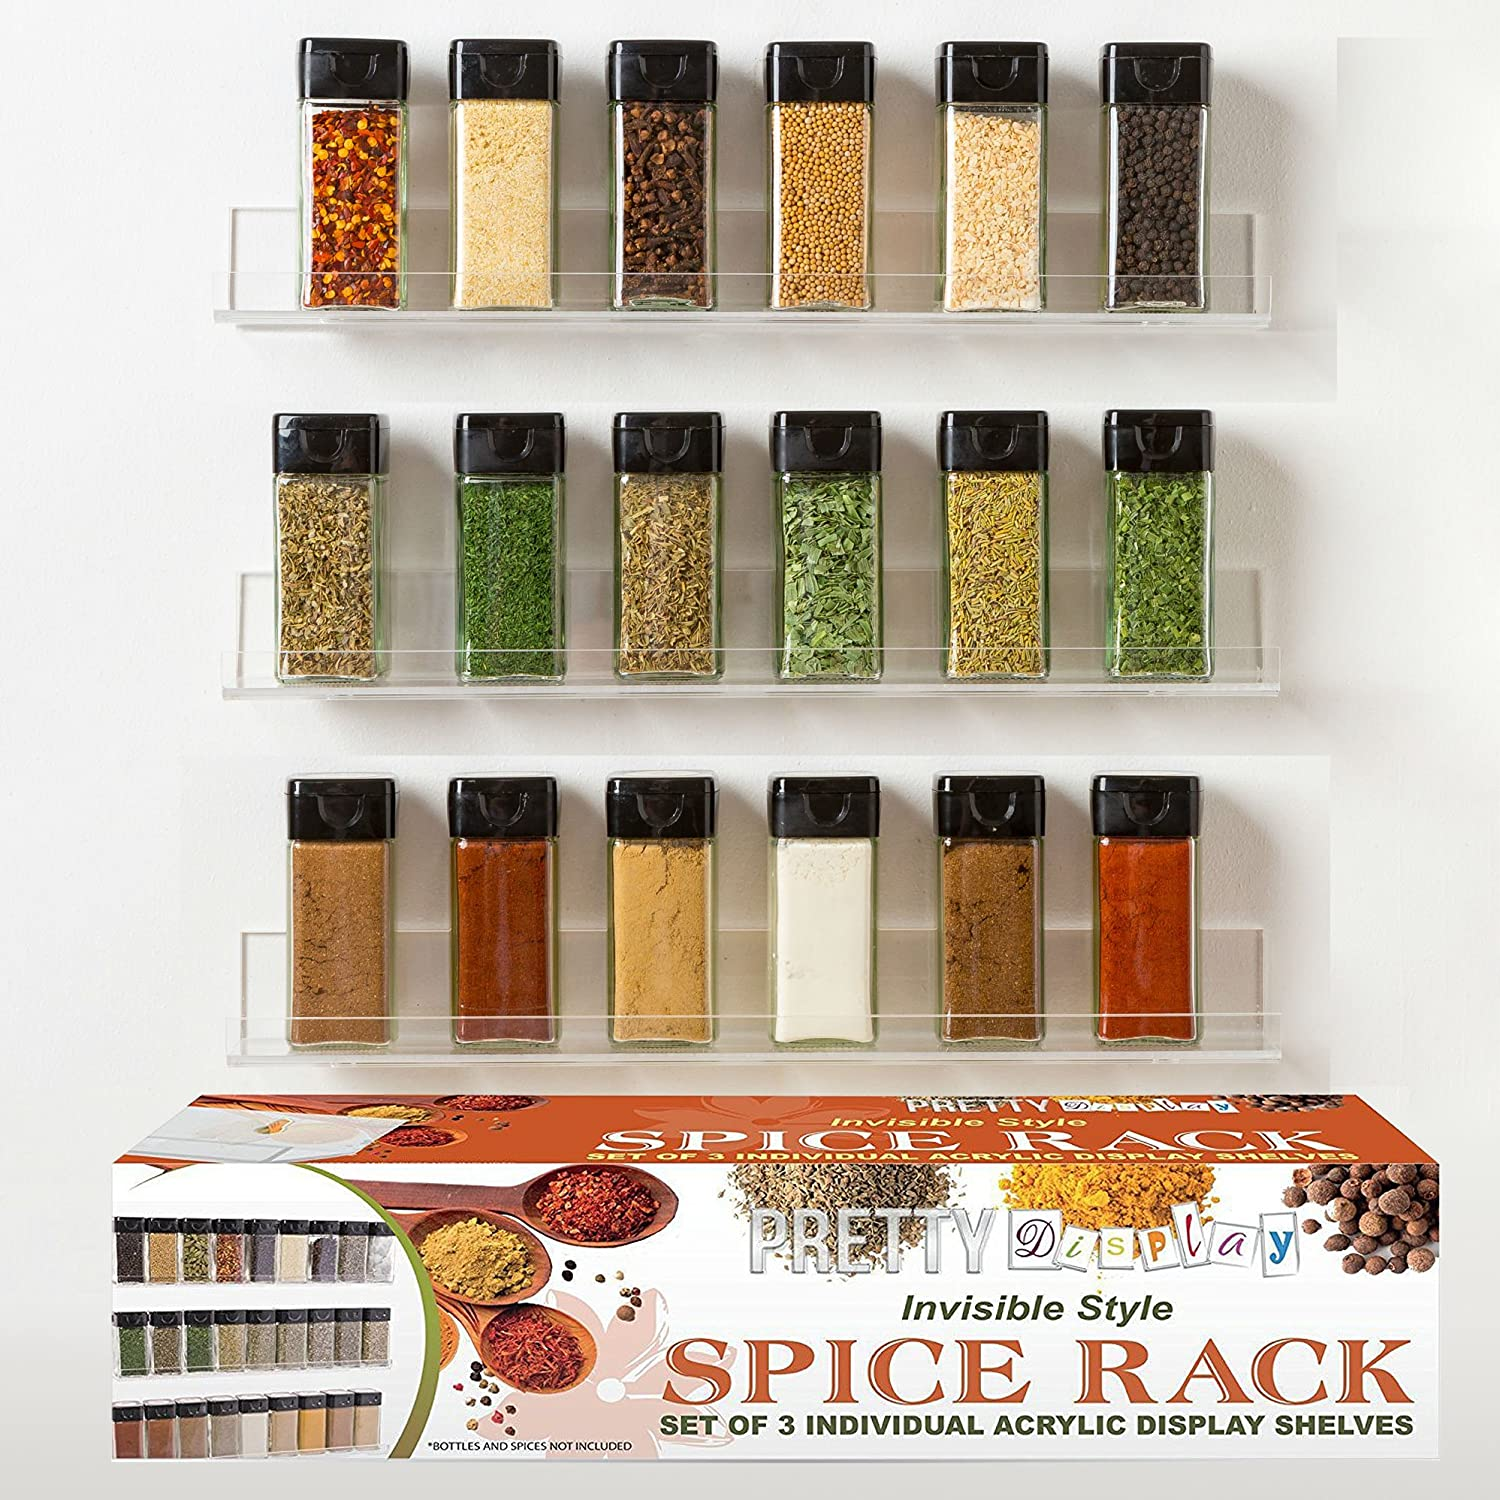 Amazoncom The Invisible Acrylic Spice Rack Strong, Sturdy, Space Saving, Three